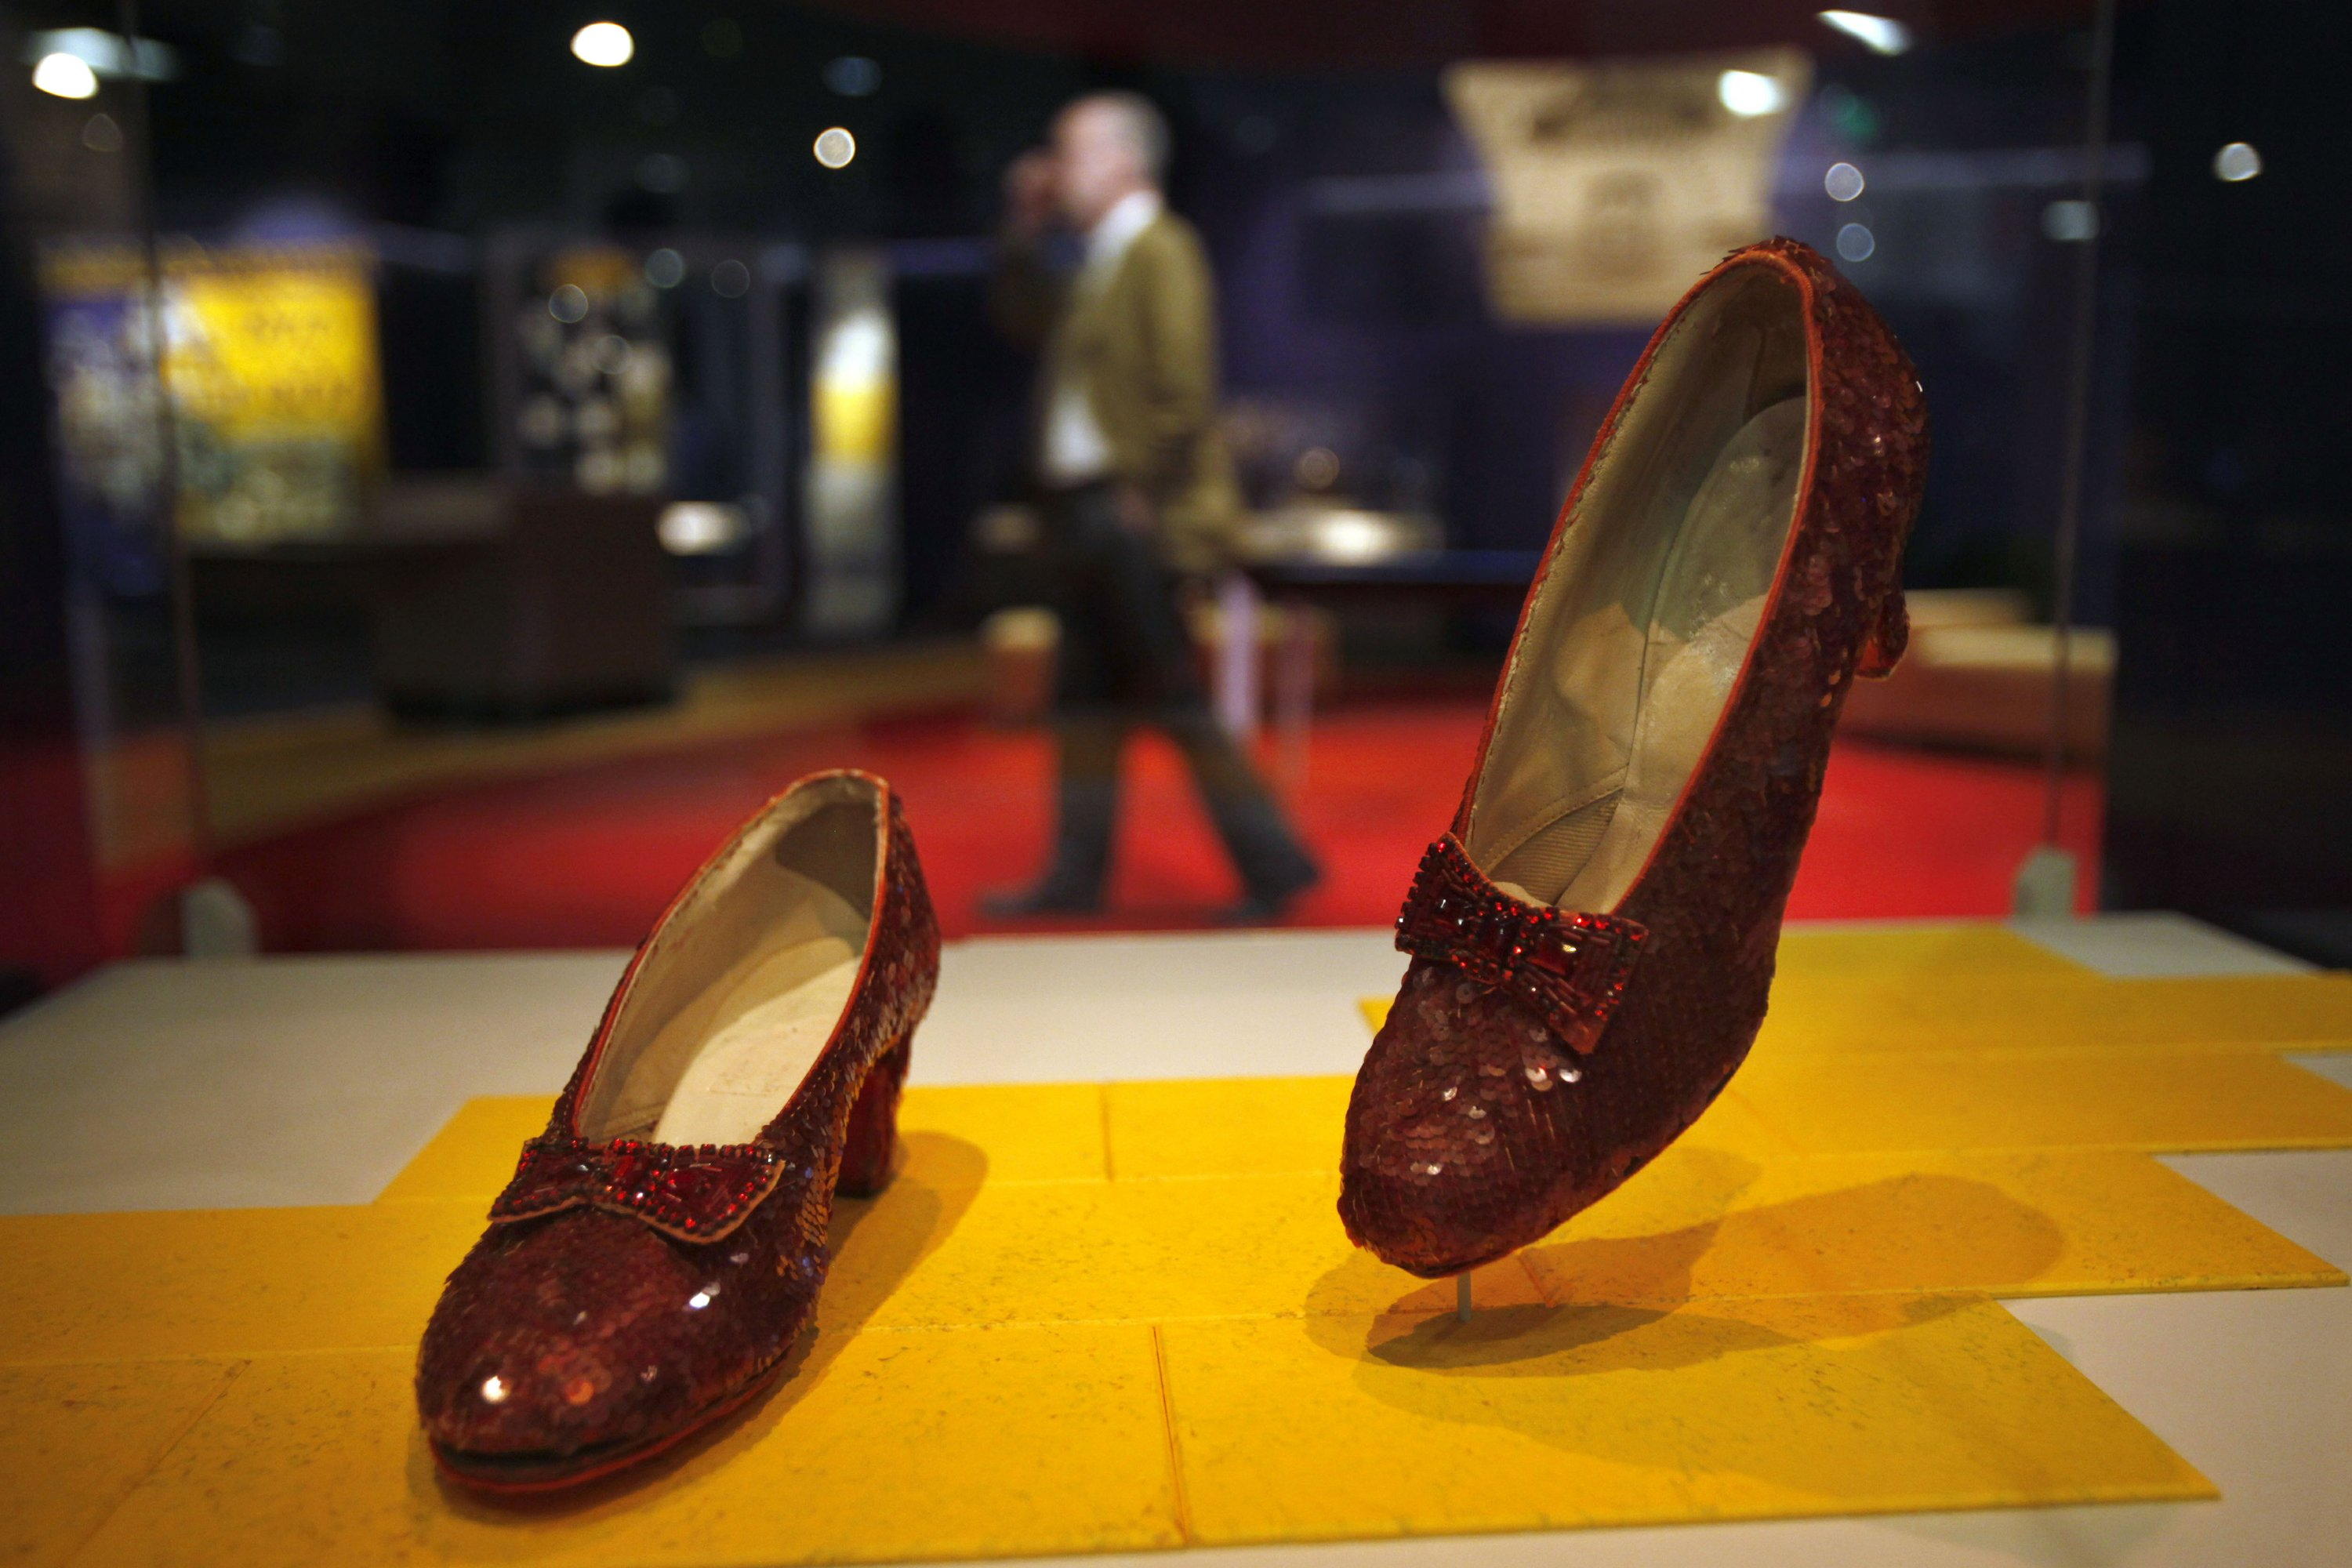 kno dorothys ruby slippers - HD2700×1800